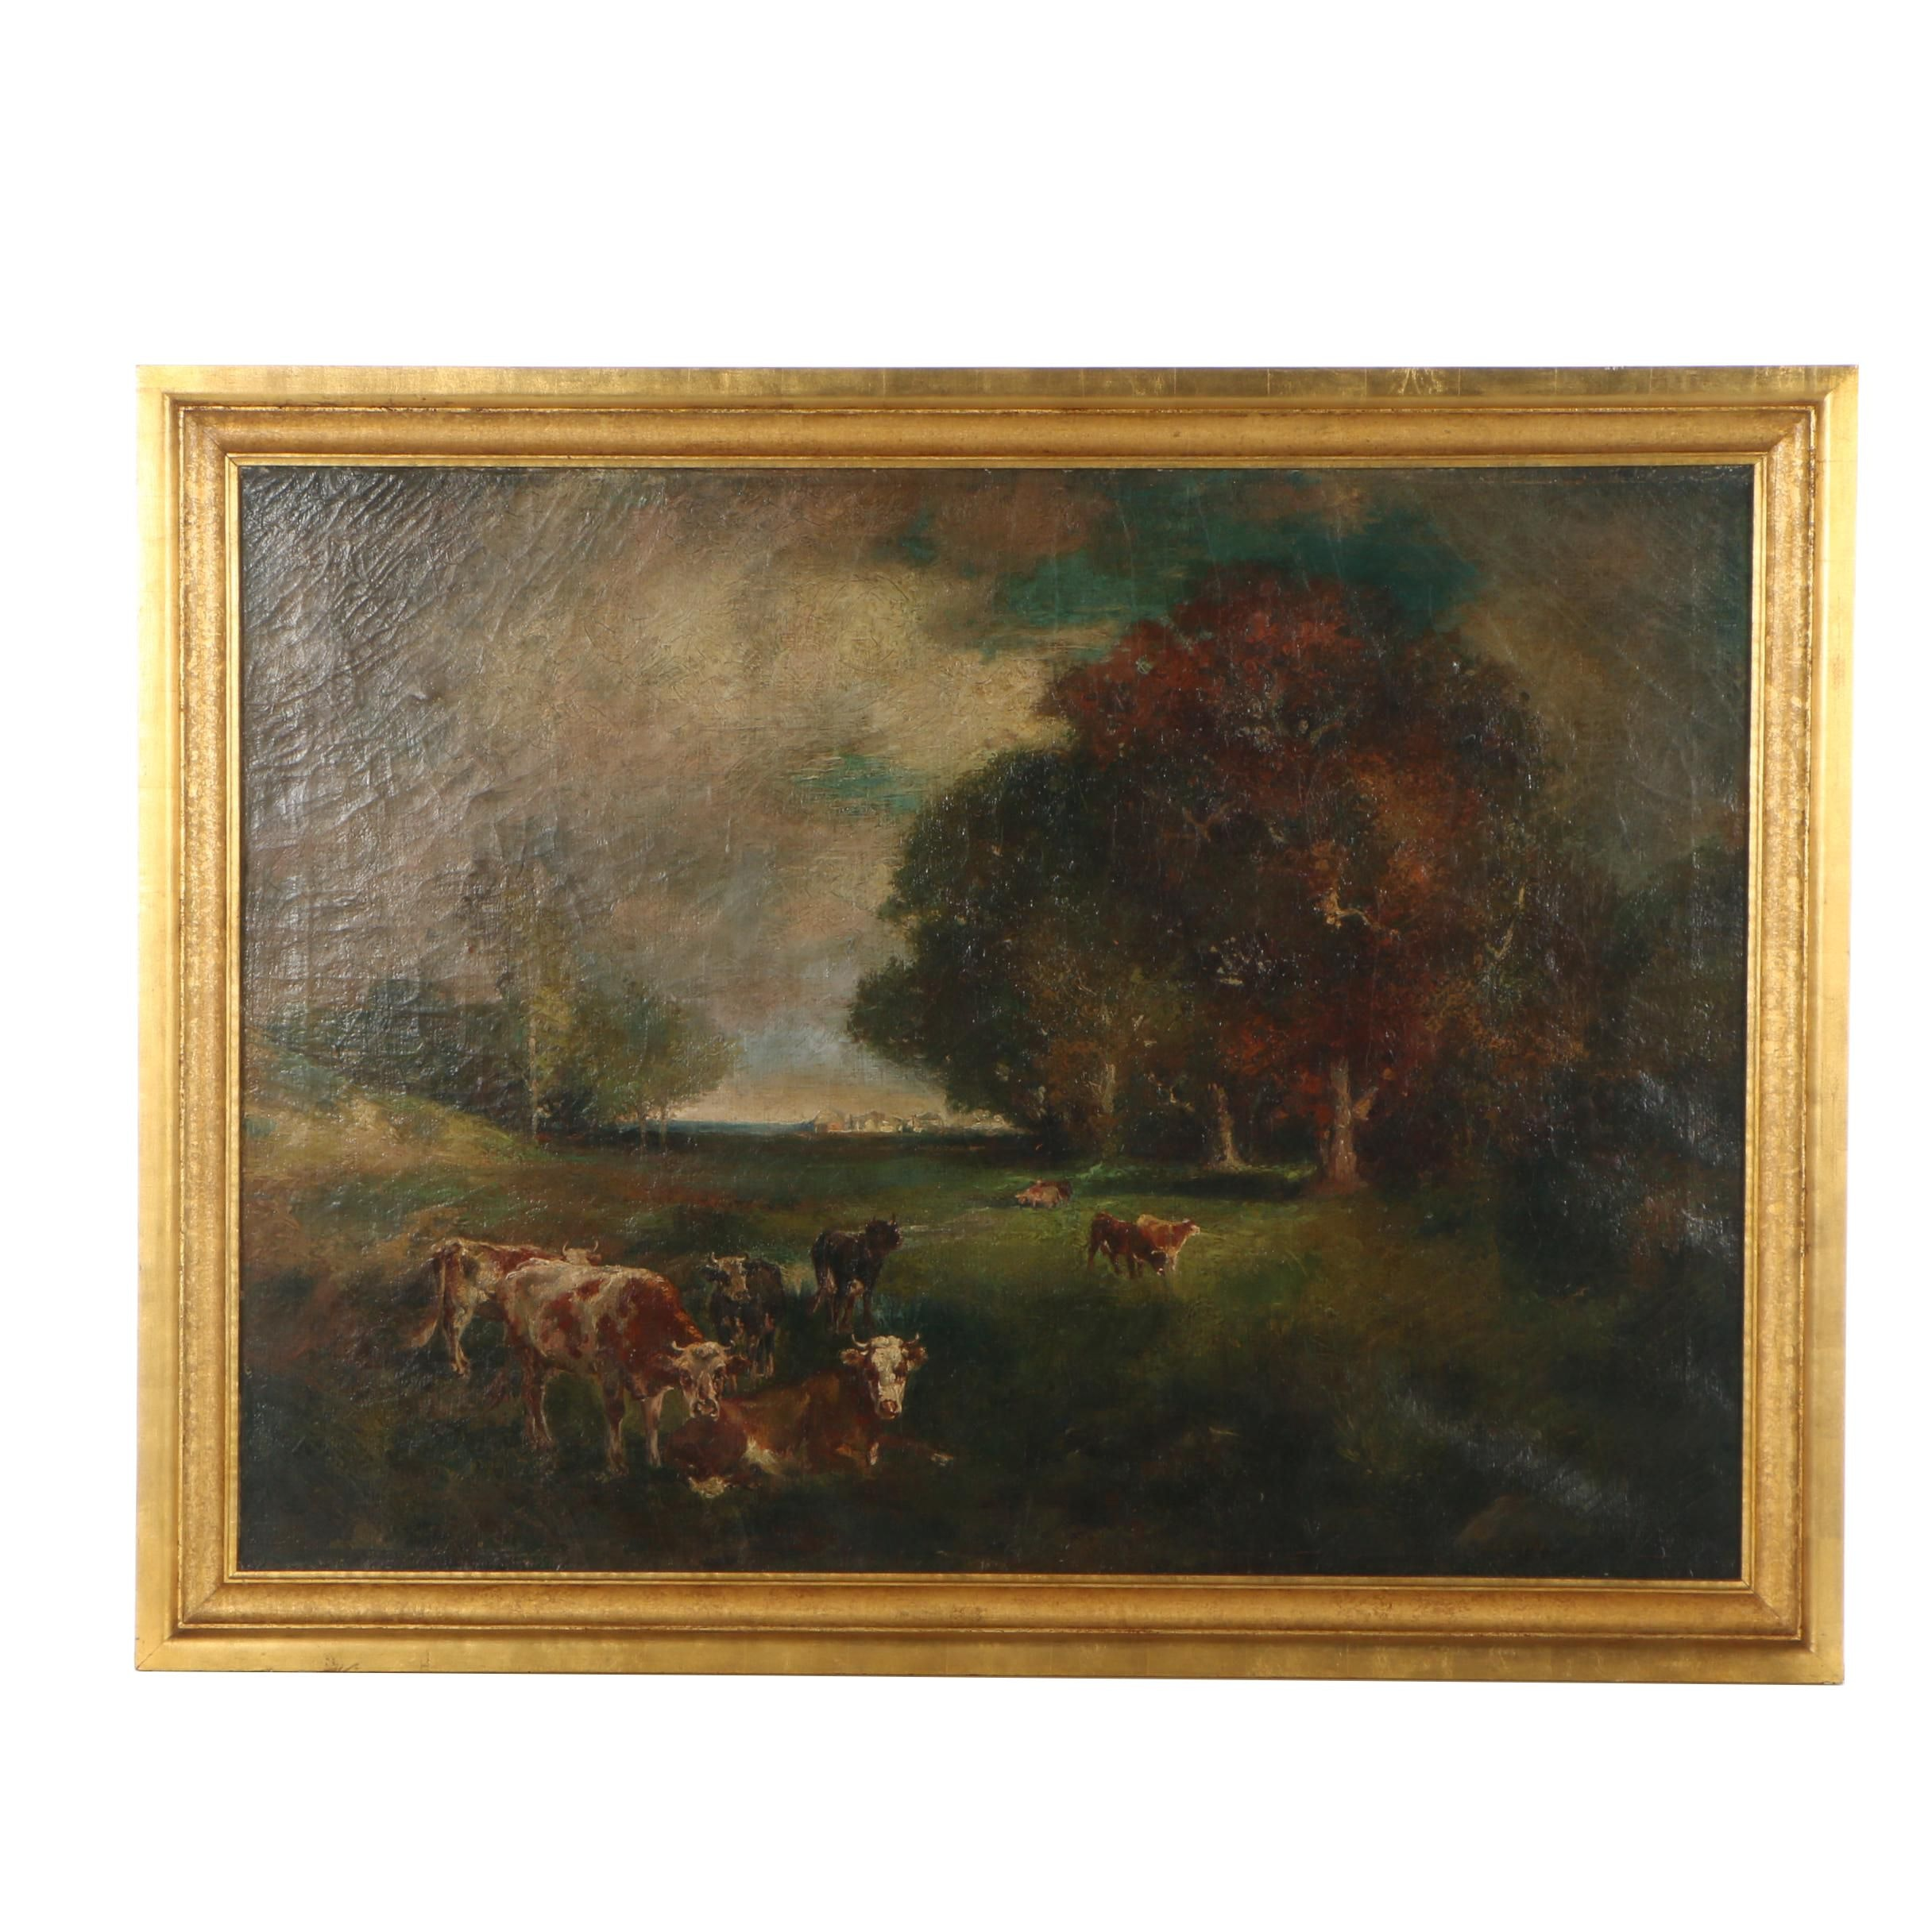 Antique Pastoral Landscape Oil Painting